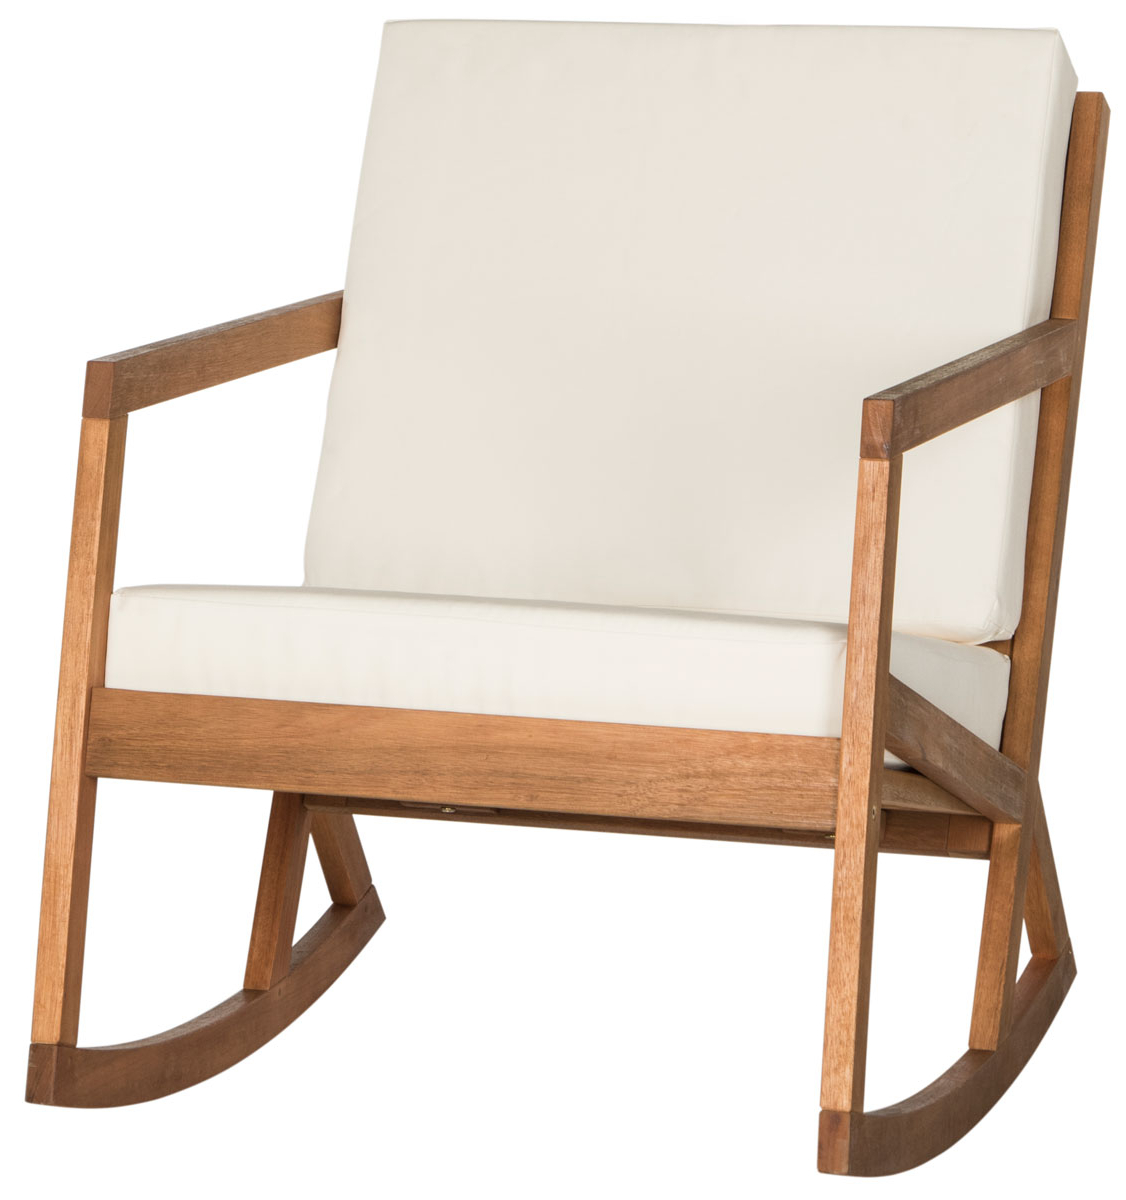 Pat7013A Outdoor Rocking Chairs, Rocking Chairs – Furniture With Famous Outdoor Rocking Loungers (View 18 of 25)